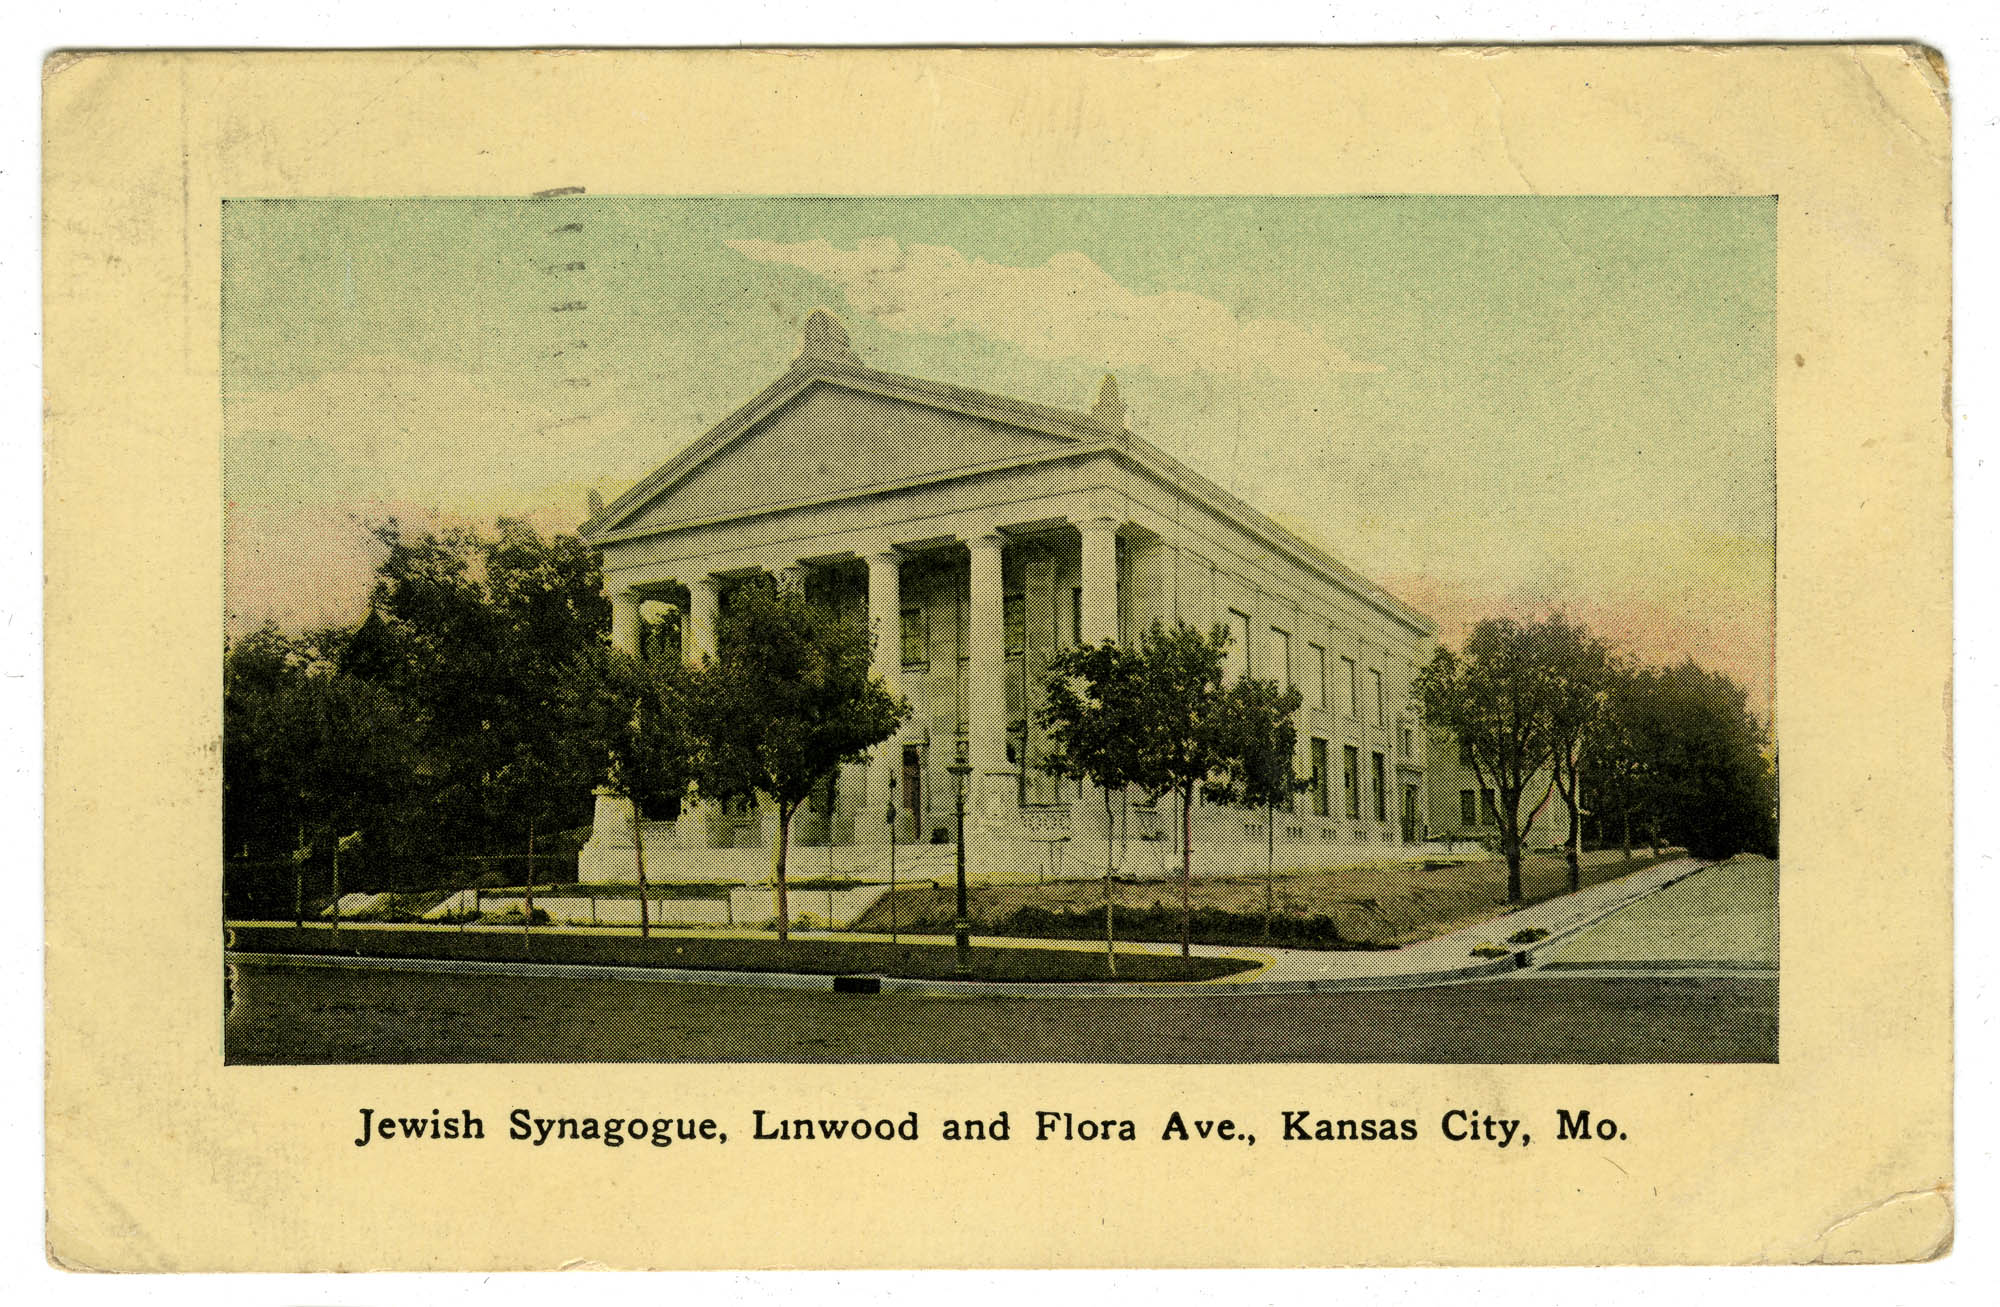 Jewish Synagogue, Linwood and Flora Ave., Kansas City, Mo.